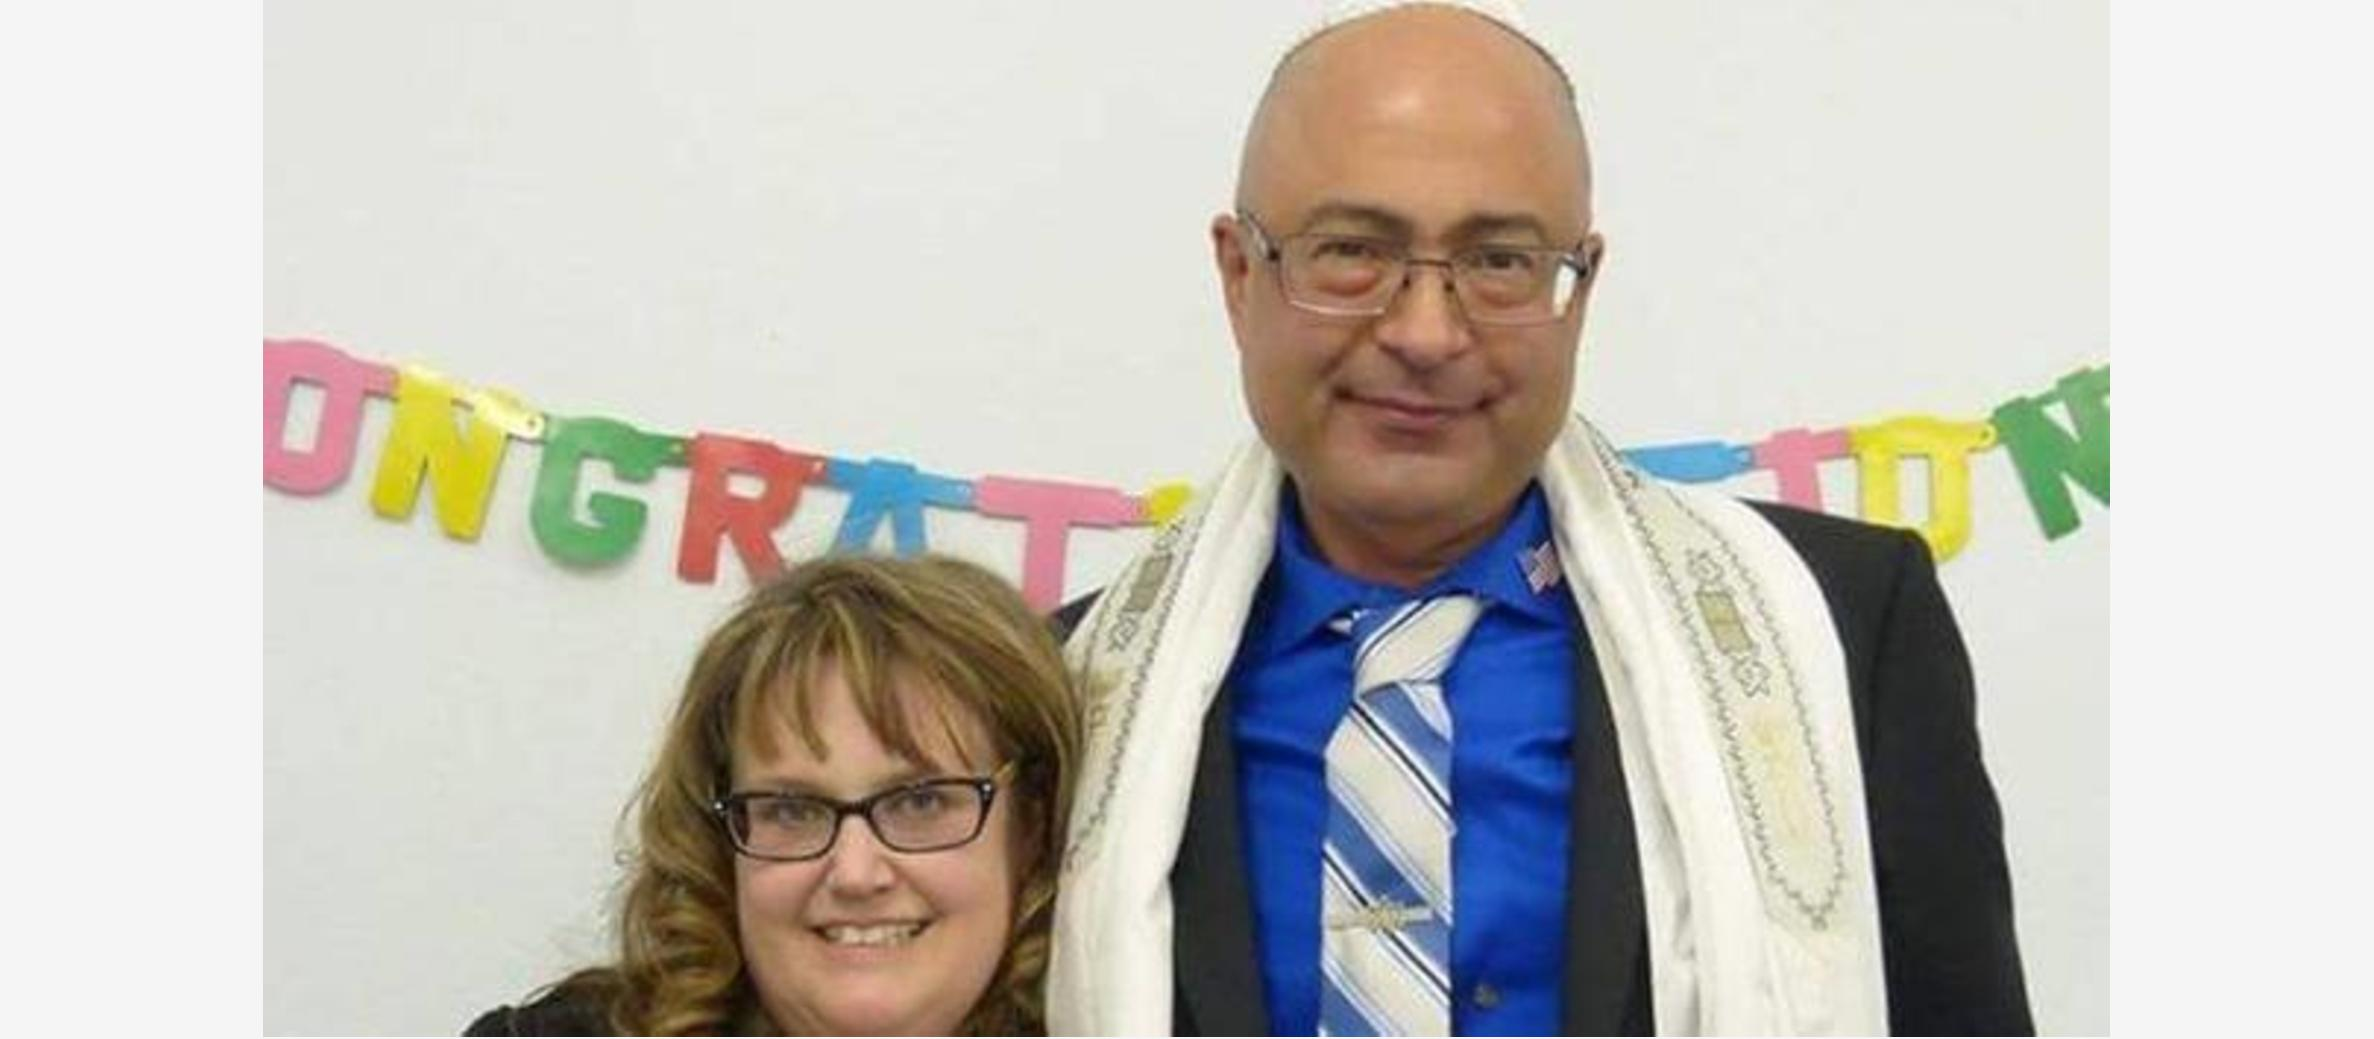 Wife of Messianic Jew killed in San Bernardino says he was martyred for beliefs